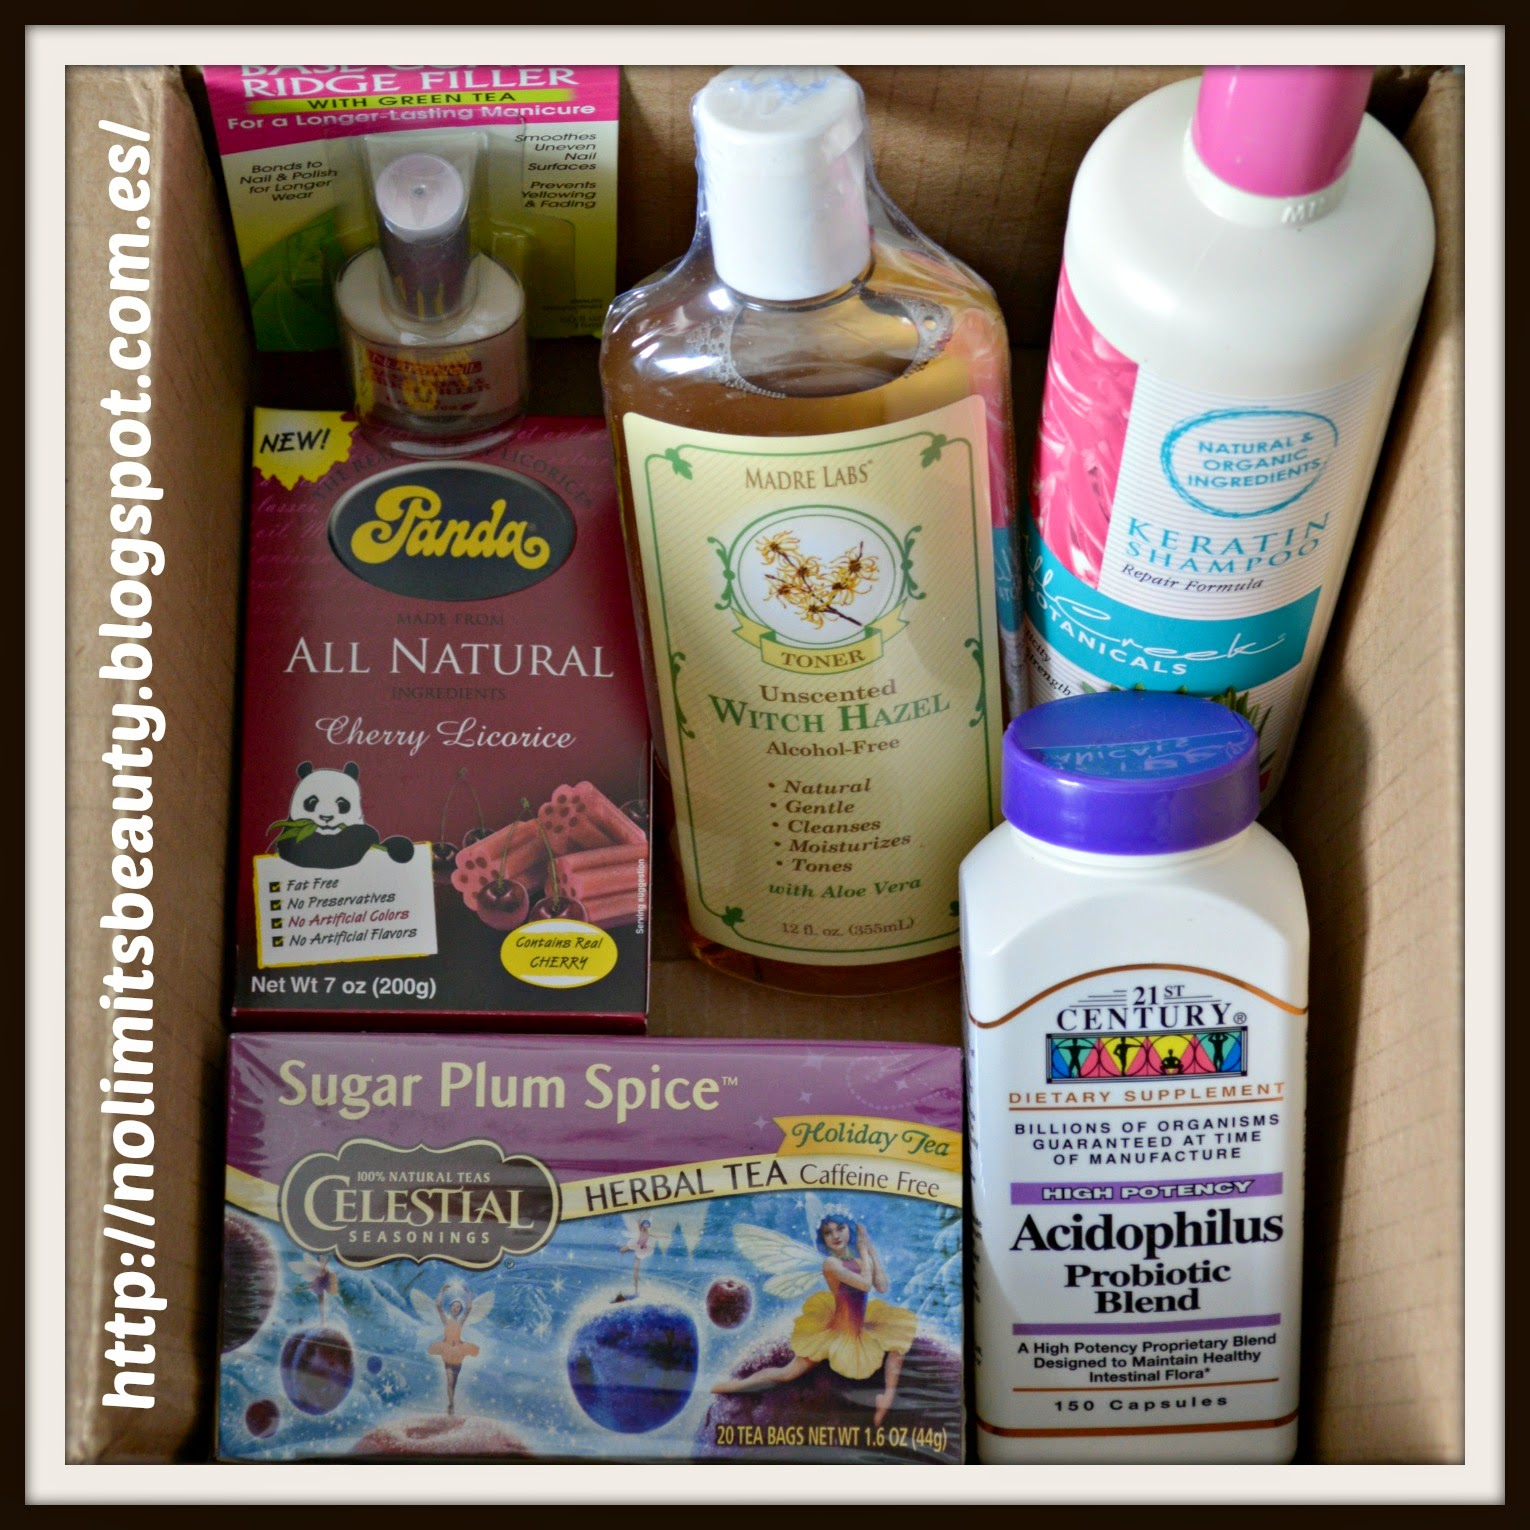 Compras: Pedido iHerb Junio 2014 (con reviews!)